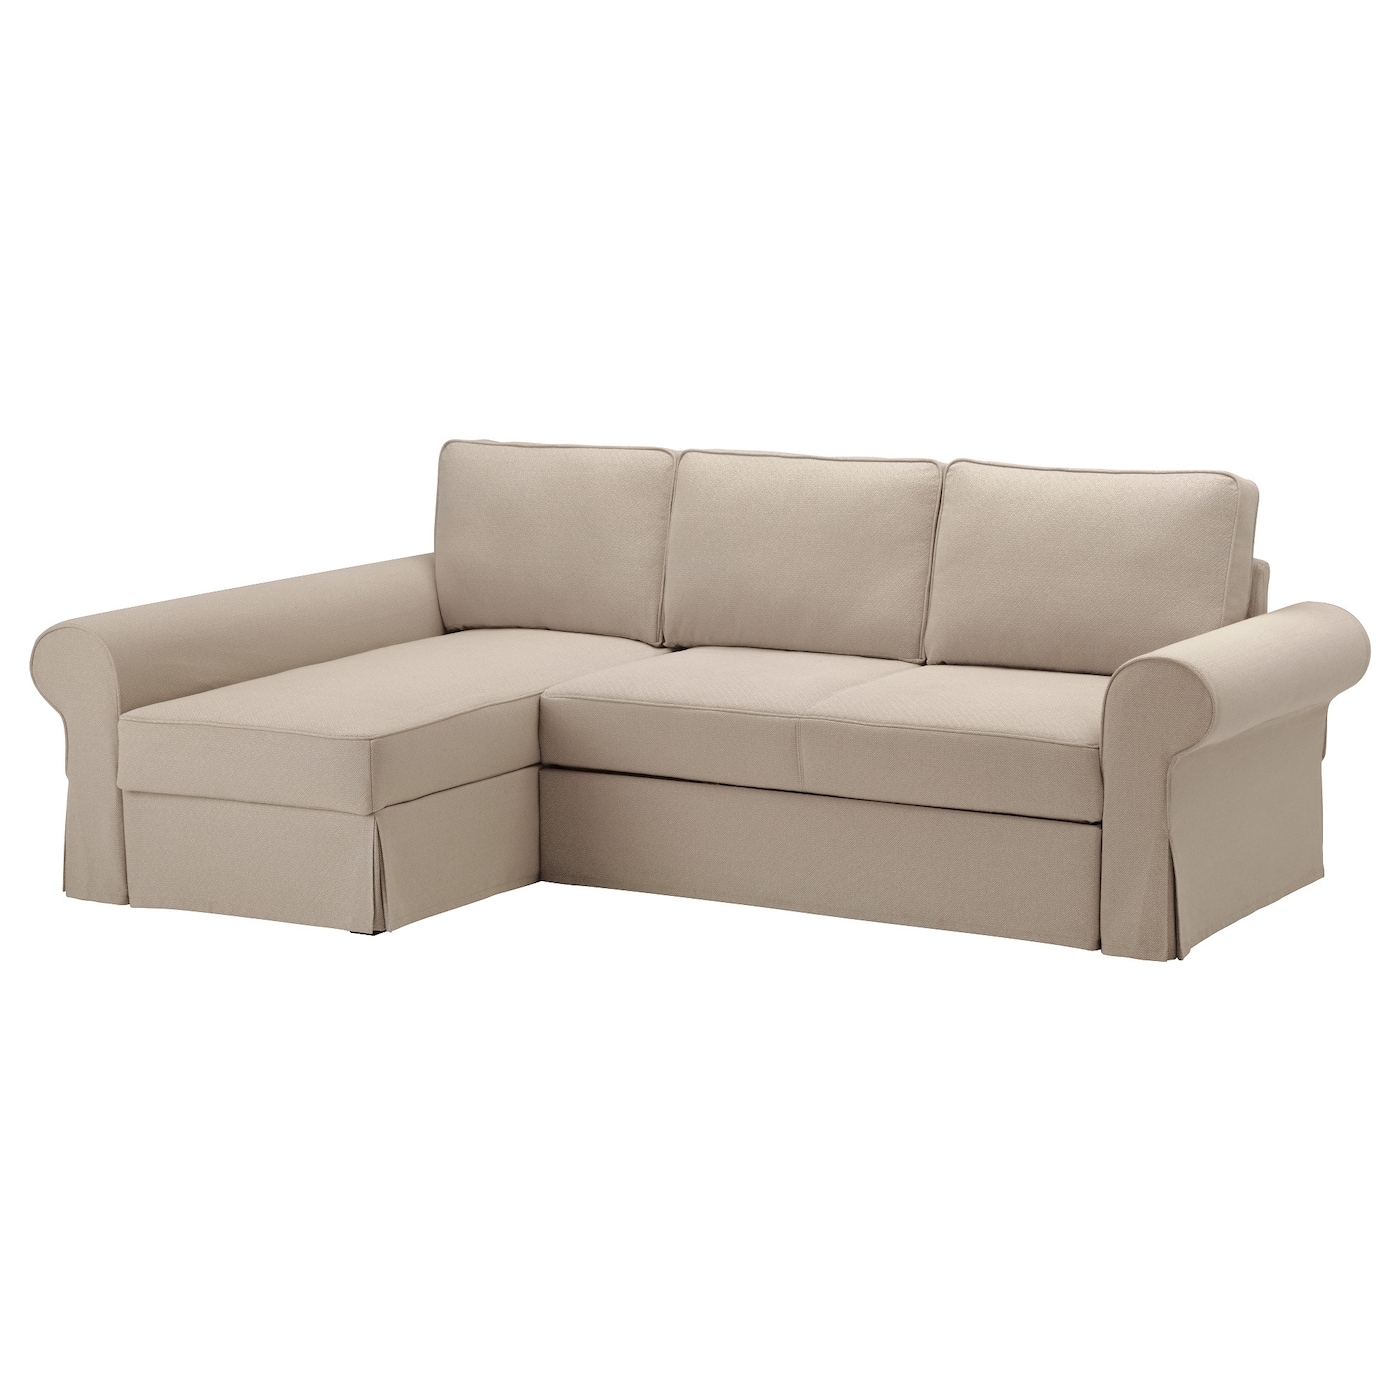 Backabro sofa bed with chaise longue hylte beige ikea for Bed chaise longue